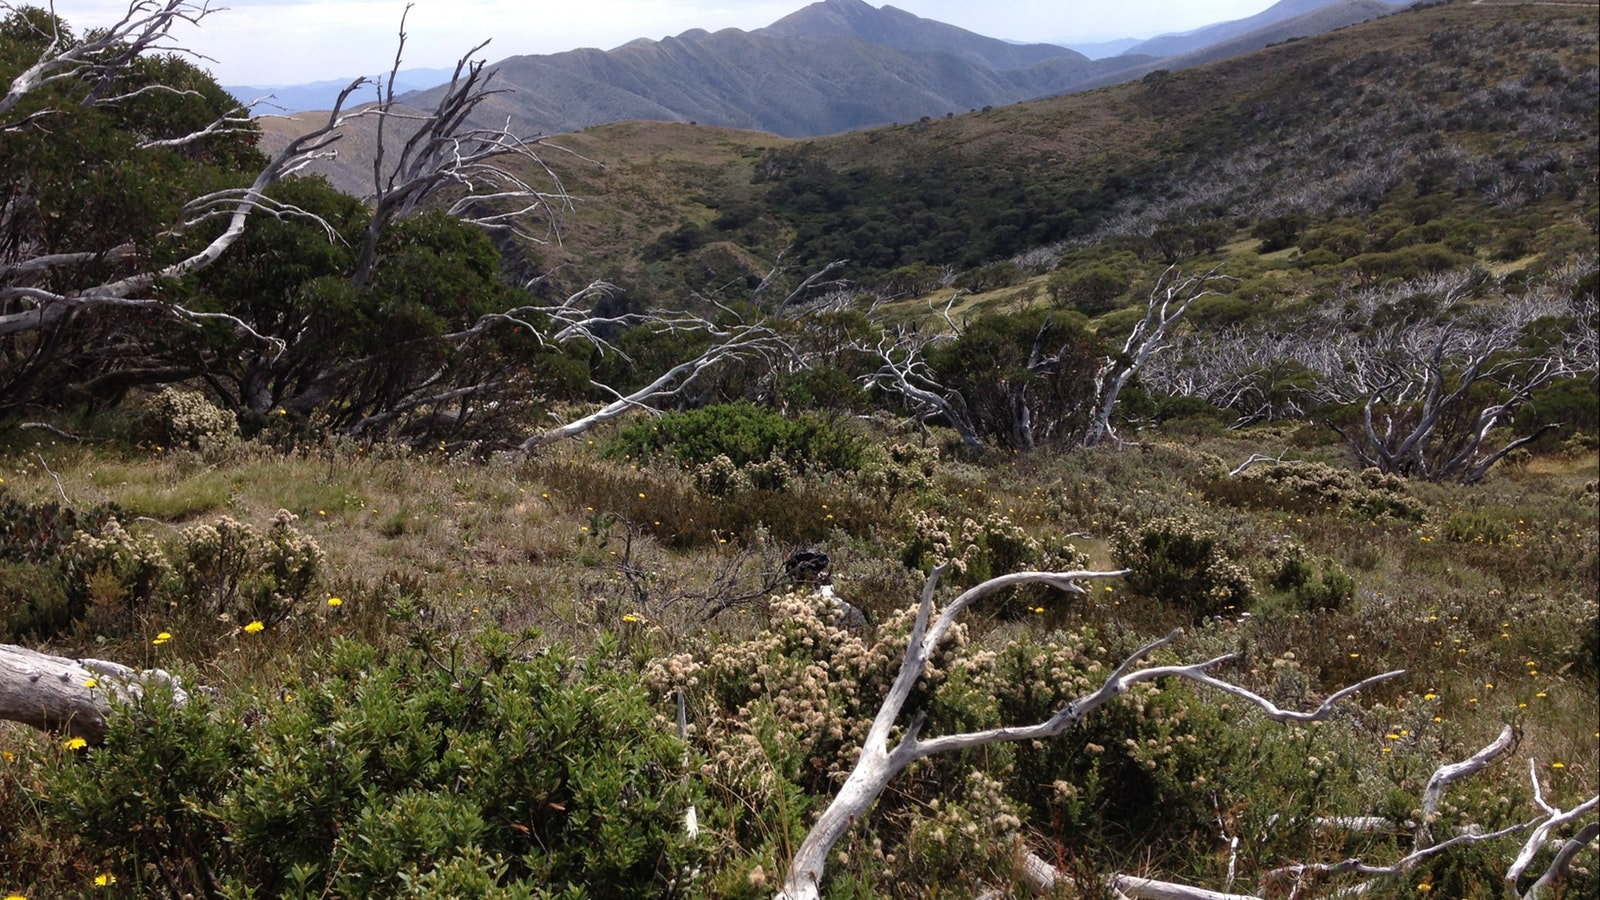 Mt Feathertop with Alpine Wildflowers